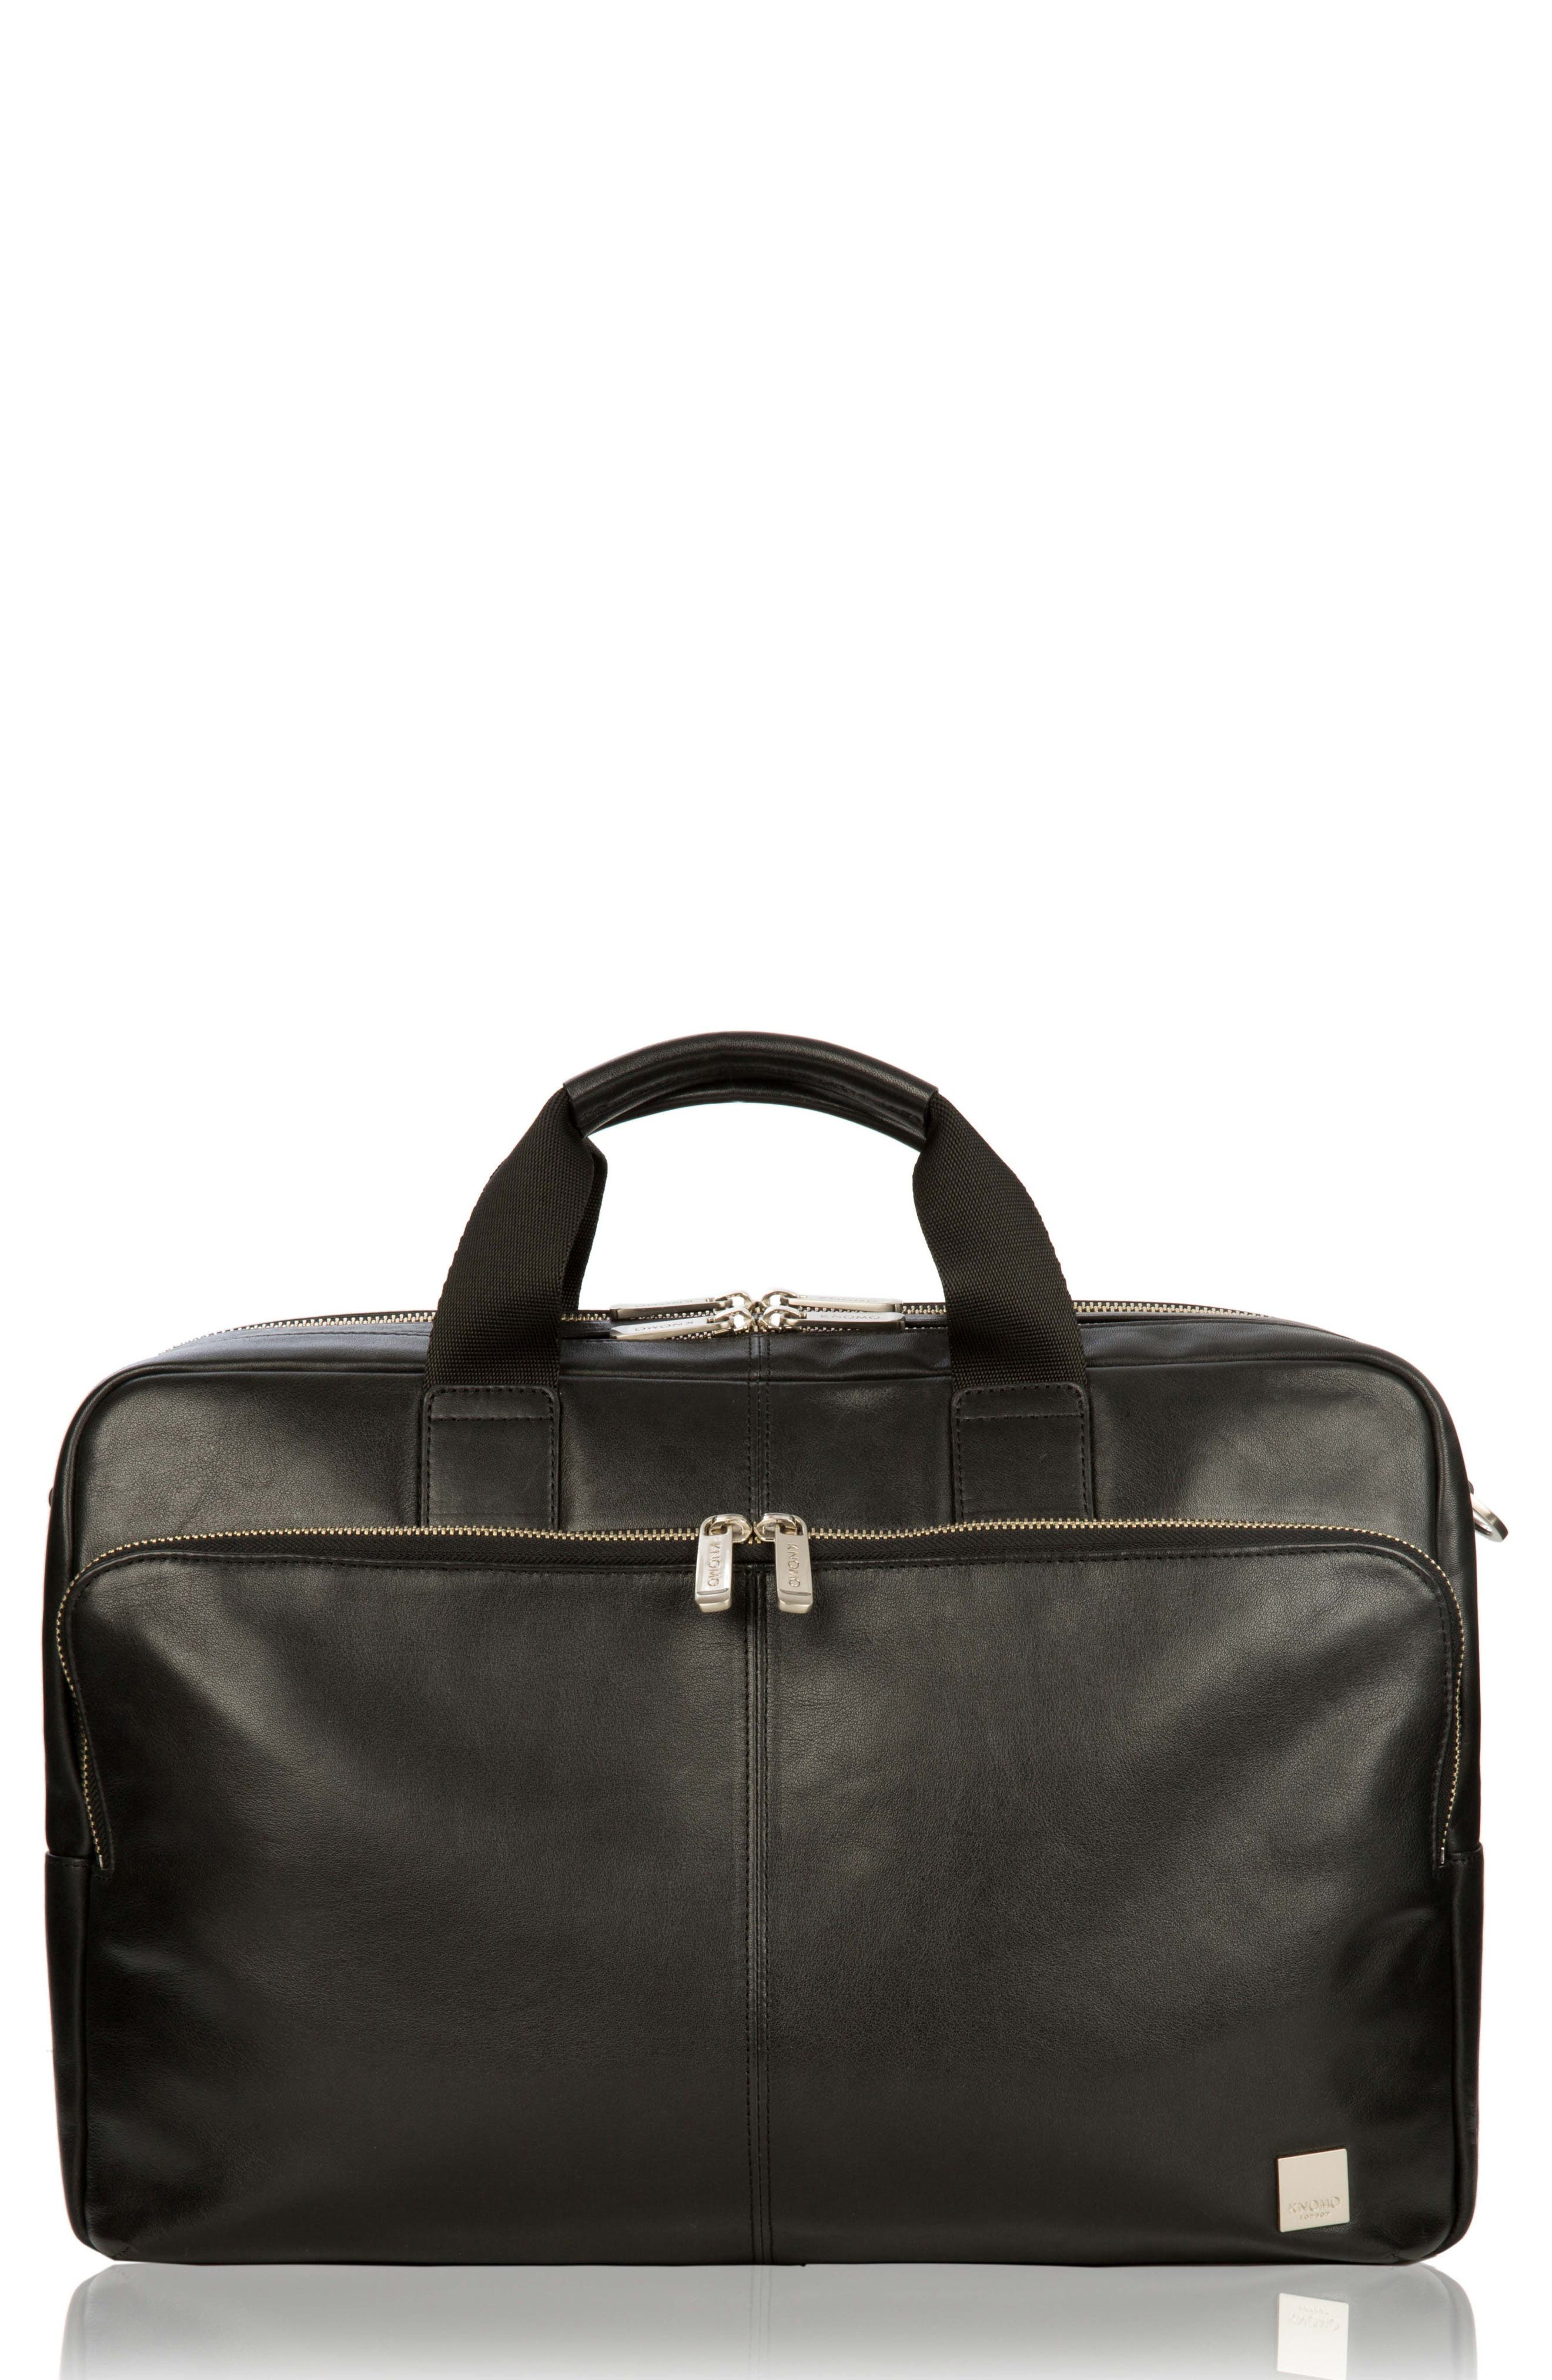 Brompton Amesbury Leather Briefcase,                             Main thumbnail 1, color,                             BLACK